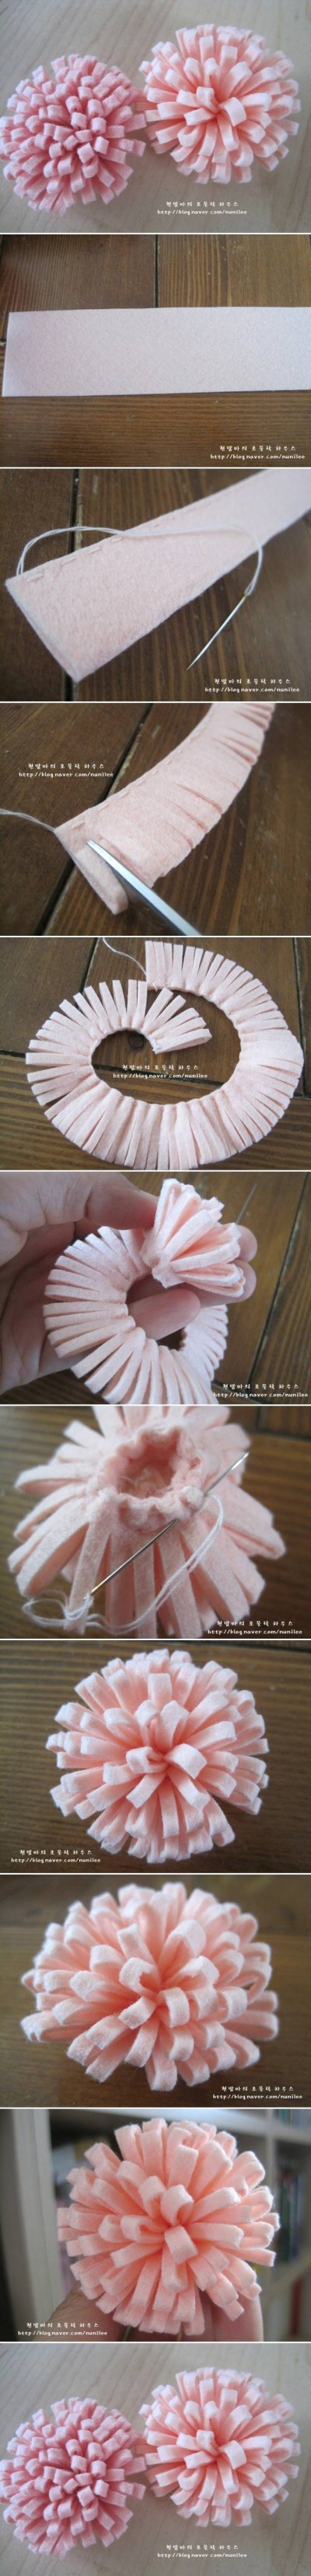 How to make Simple Easy Felt Flower step by step DIY tutorial instructions